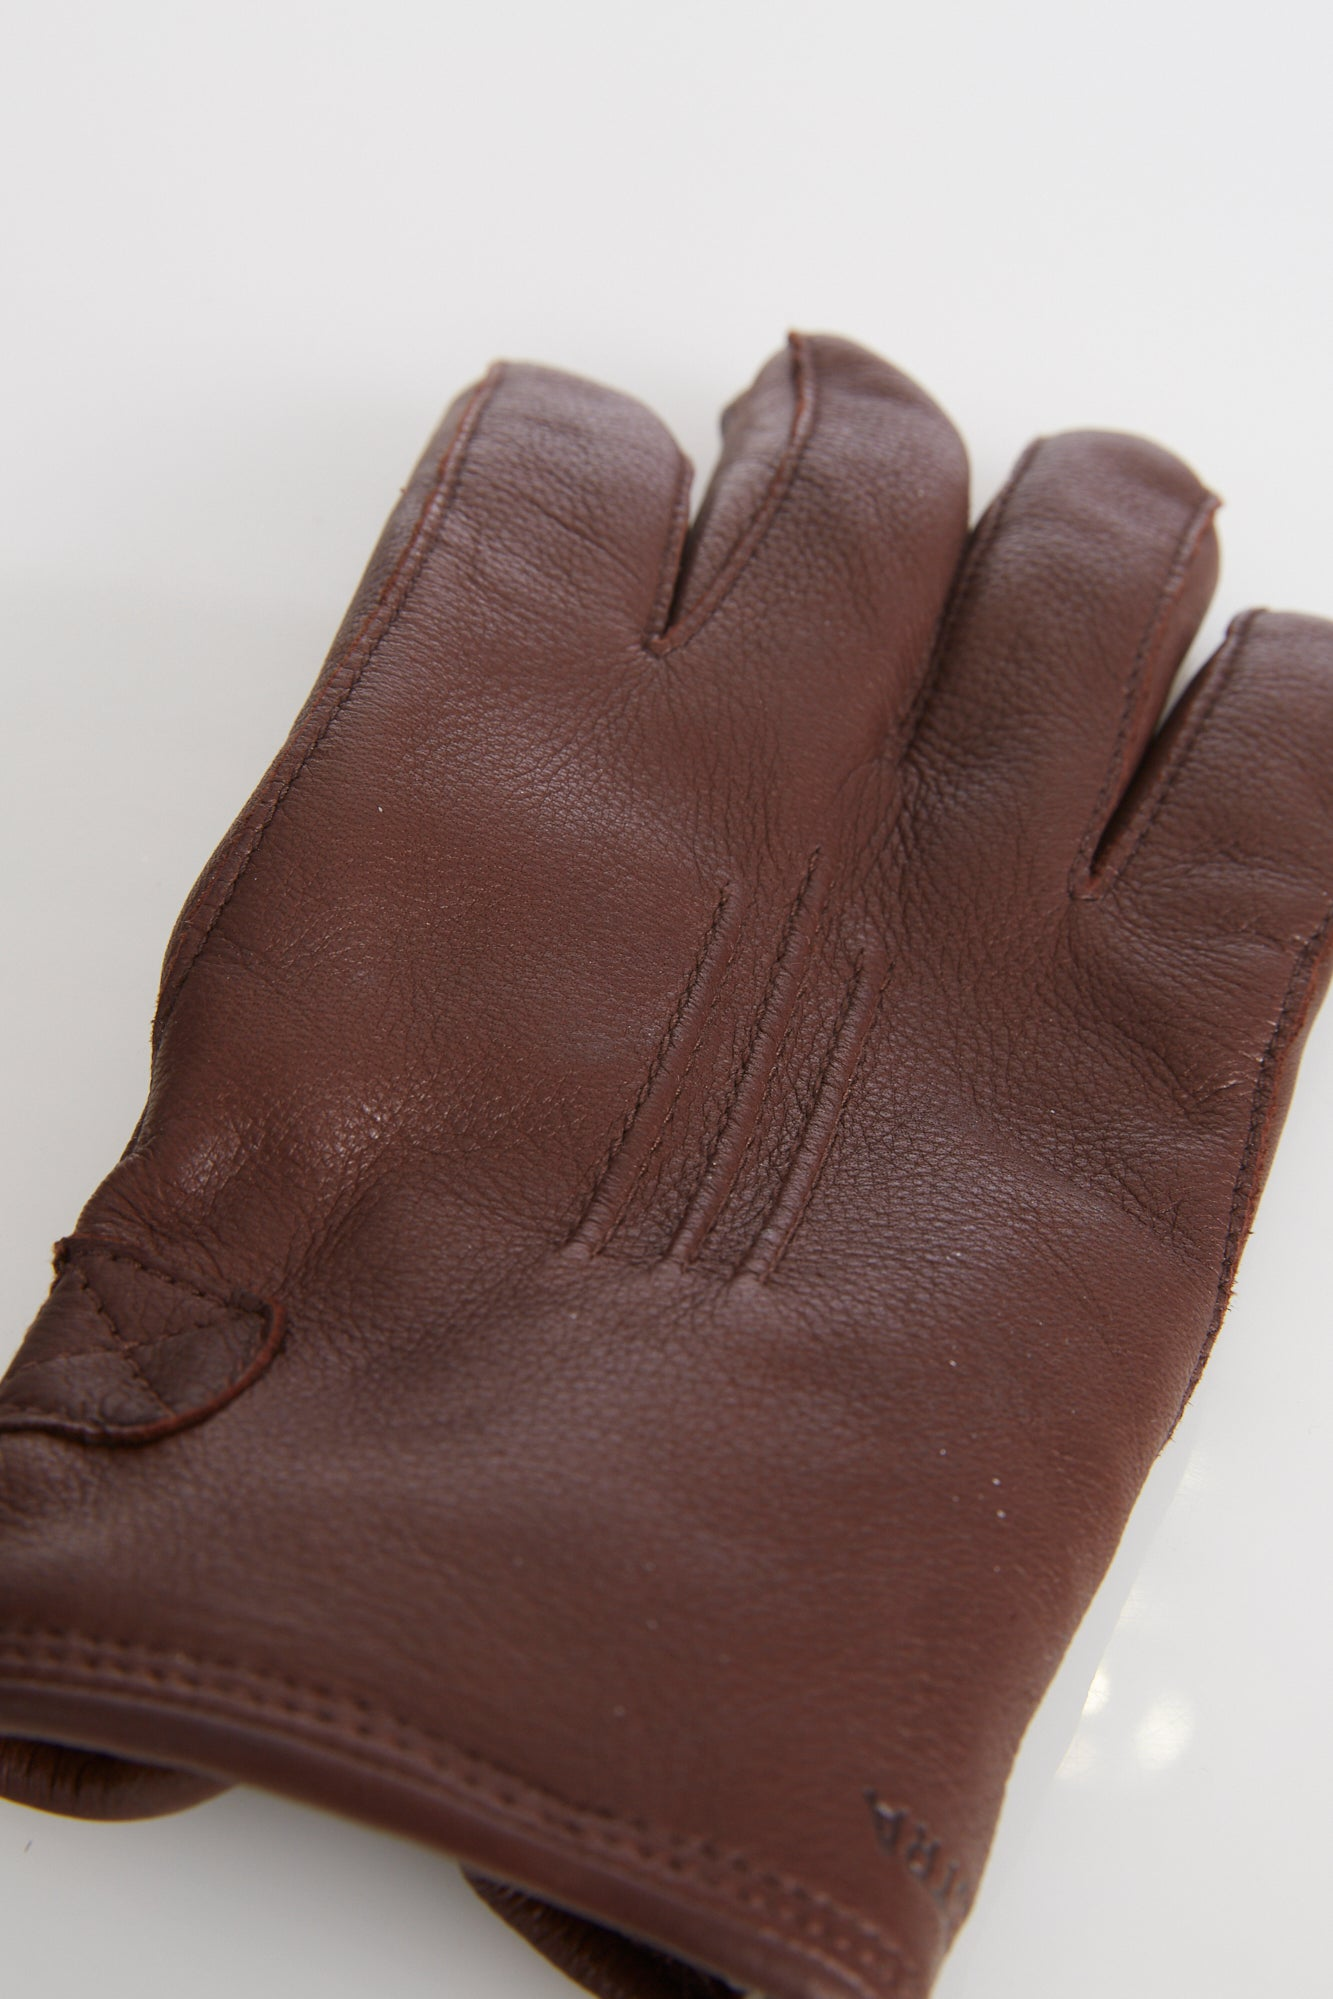 Hestra Brown Deerskin Leather Gloves with Shearling Lining - Accessories - Hestra - LALONDE's